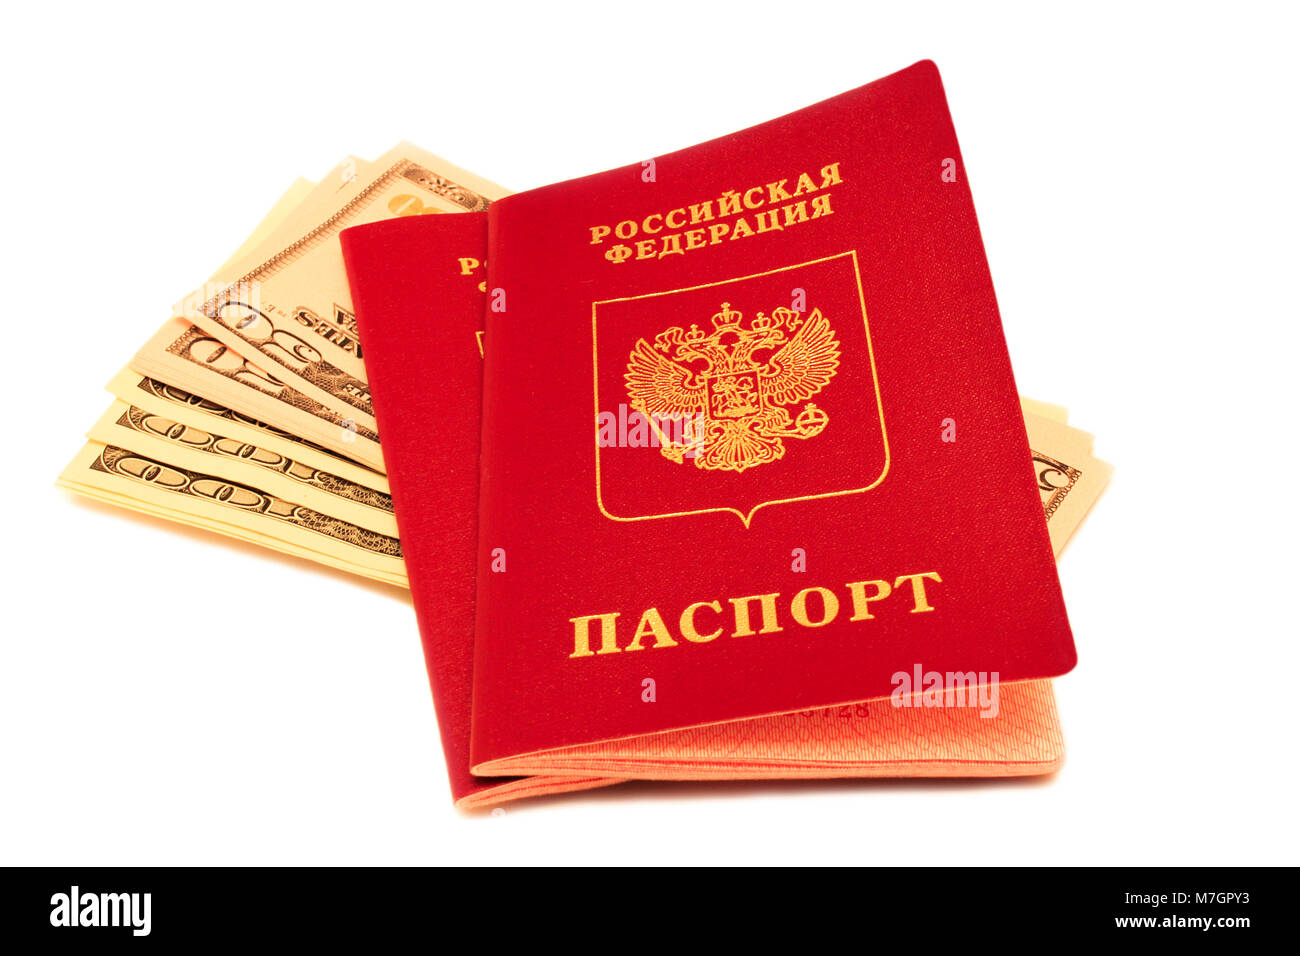 Russian passports are on american currency isolated on white background. - Stock Image